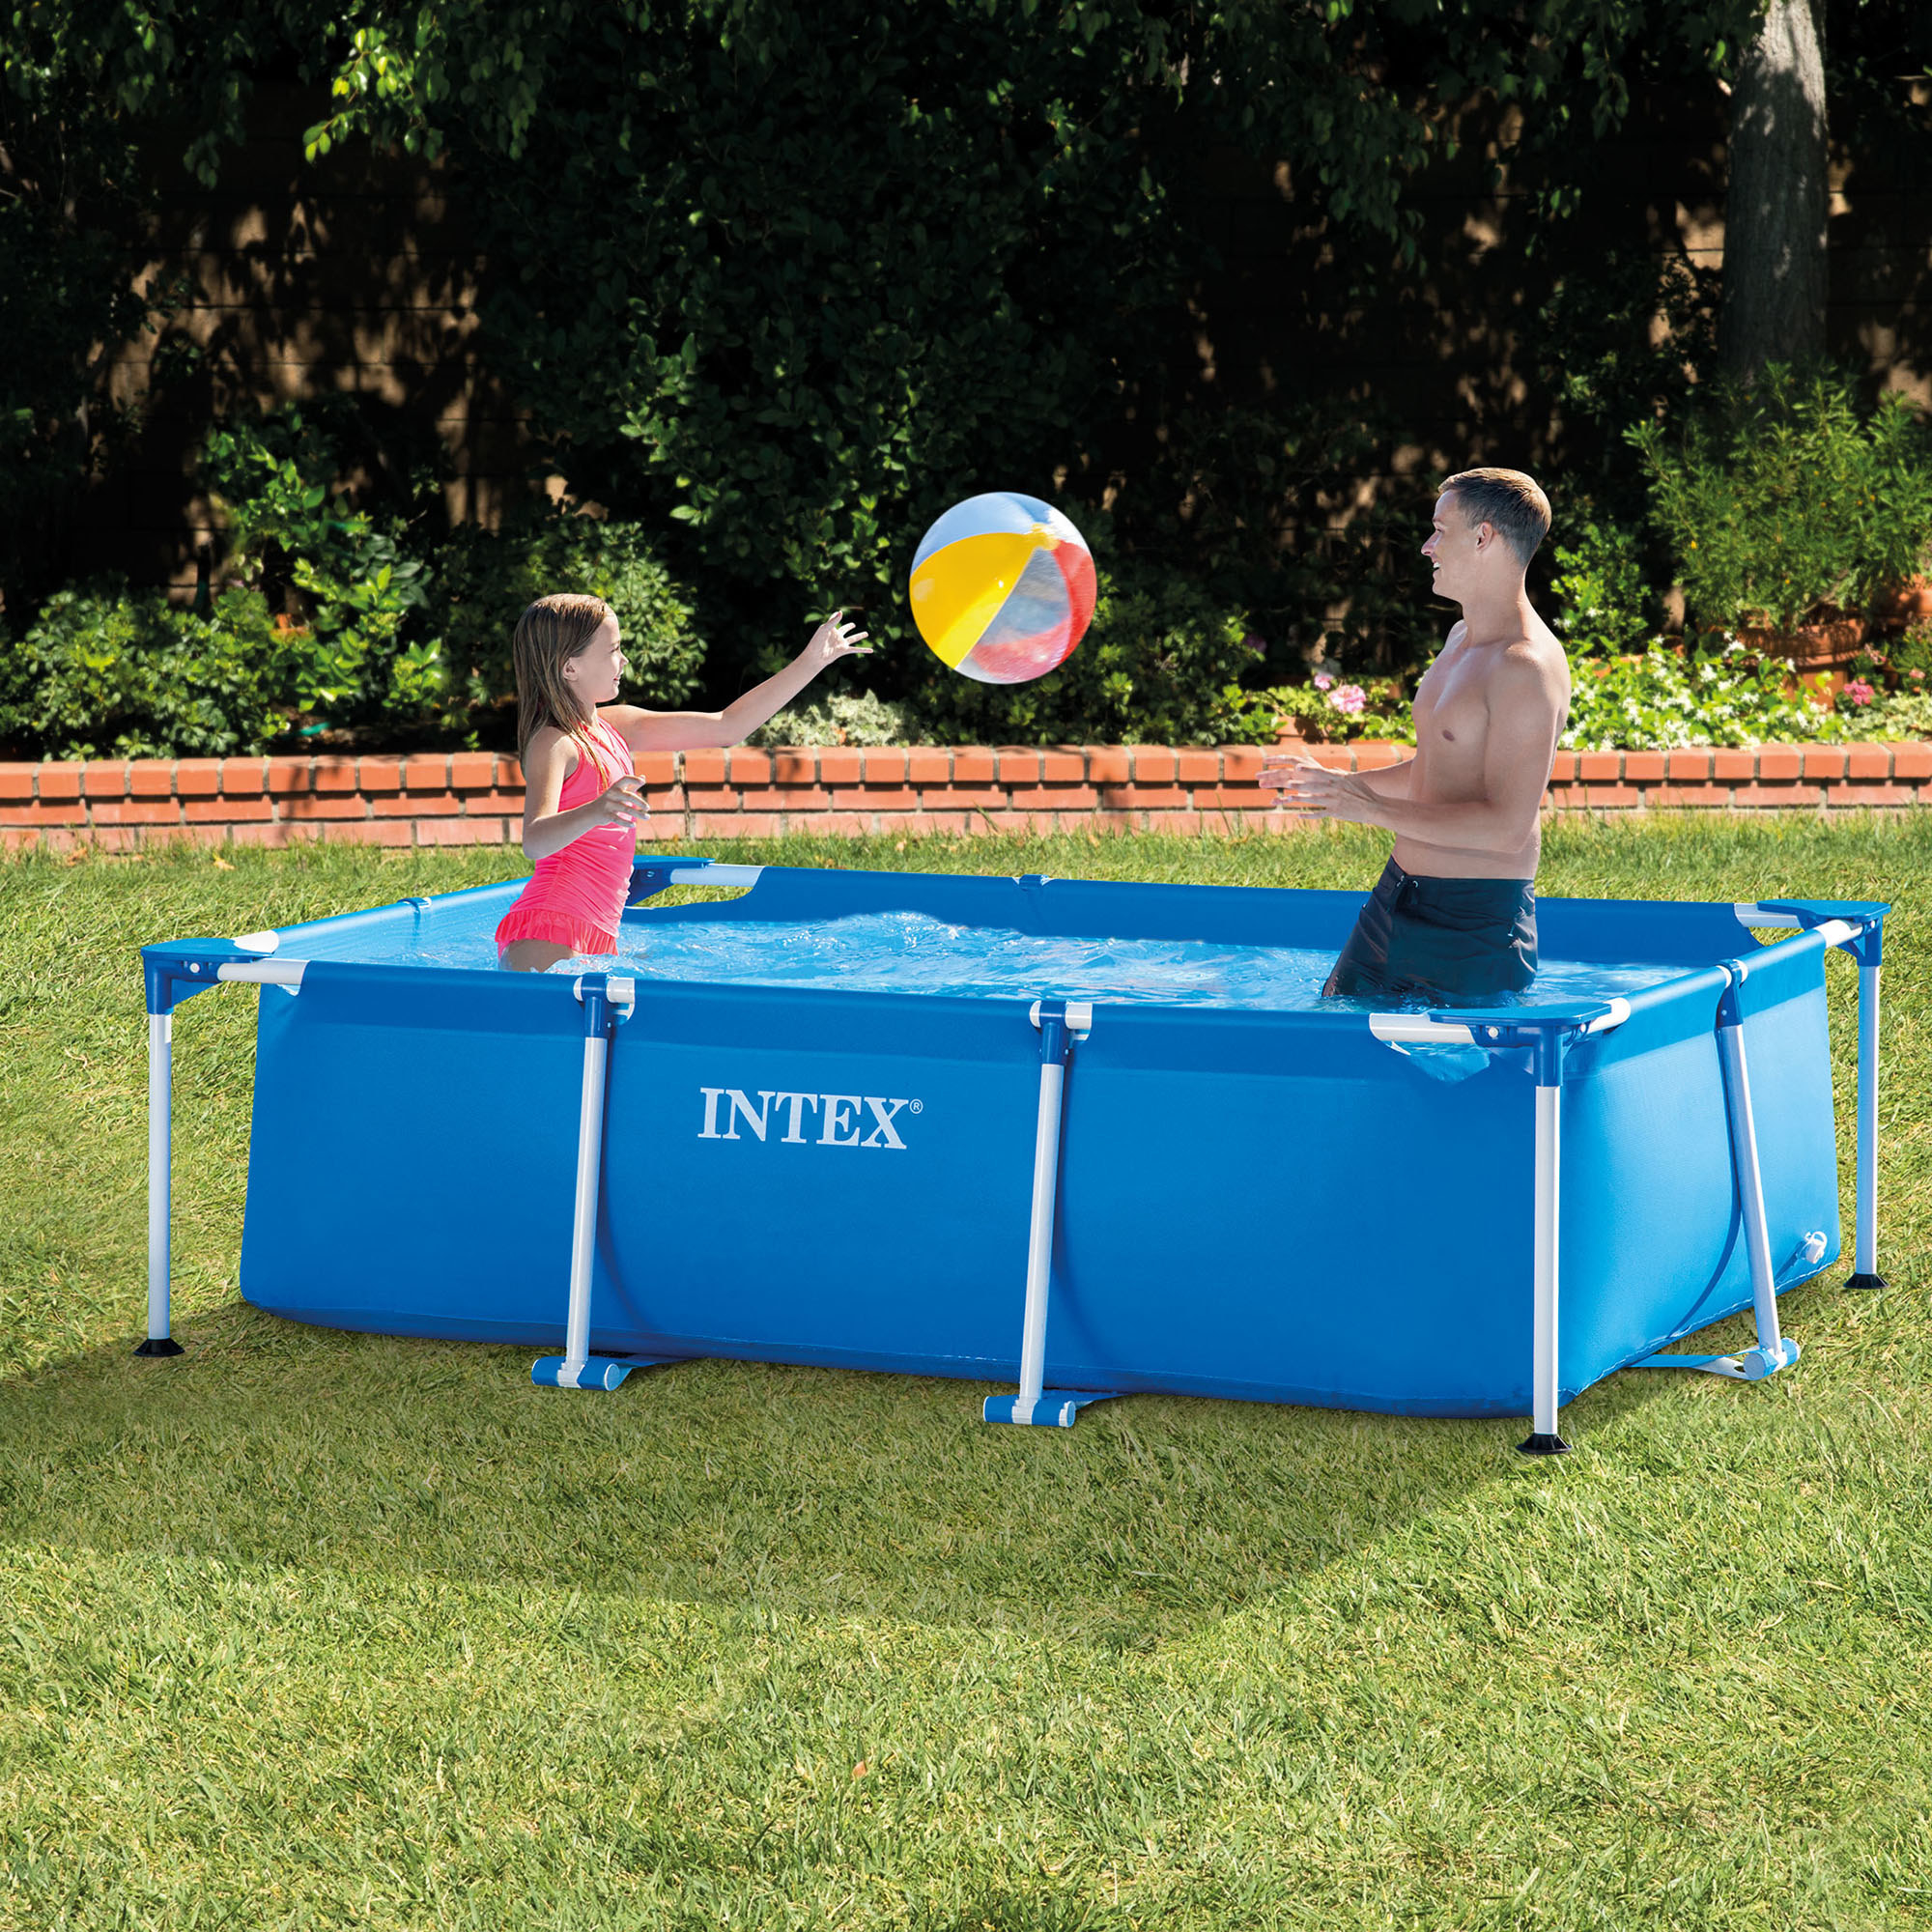 Two people play in the Intex Rectangular Frame Above Ground Swimming Pool